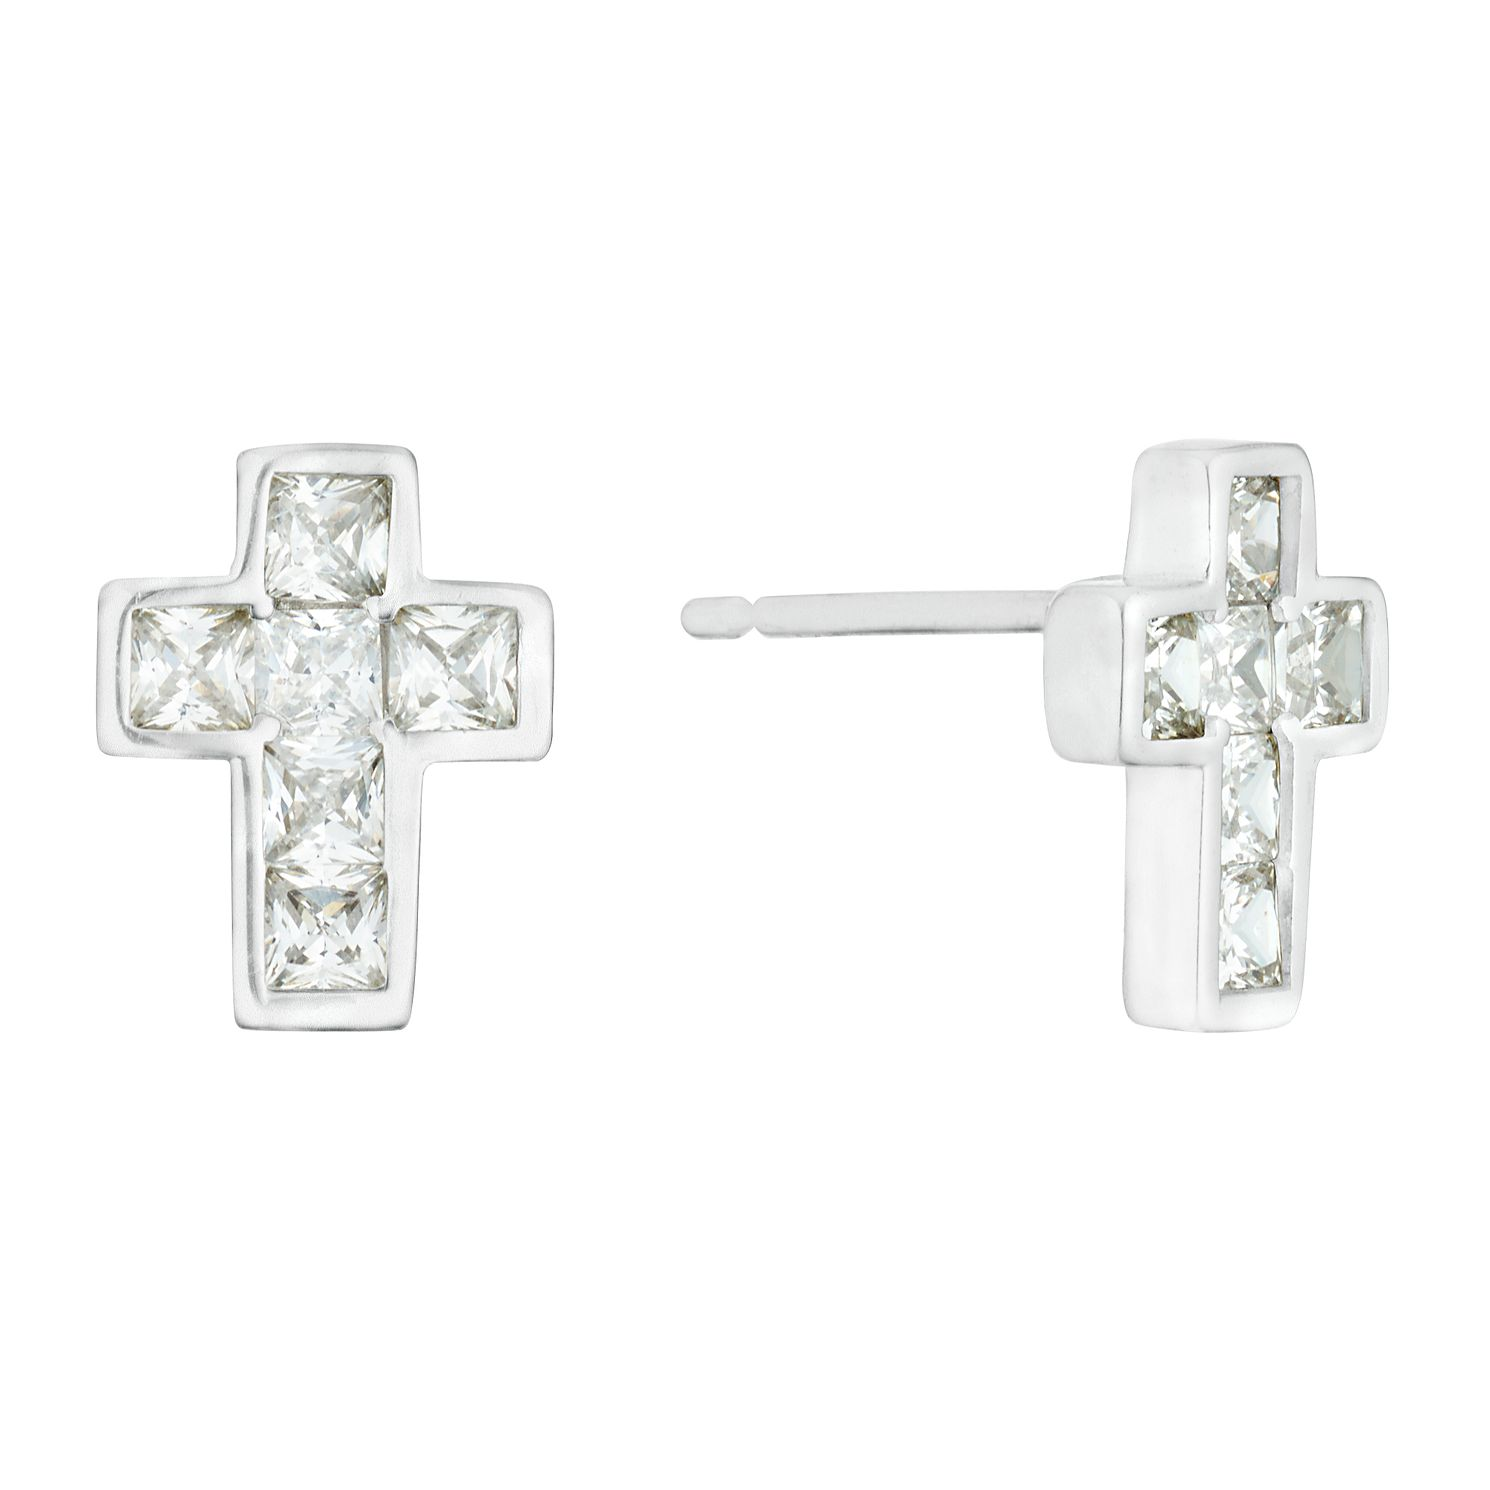 9ct White Gold Cubic Zirconia Cross Stud Earrings - Product number 3142302